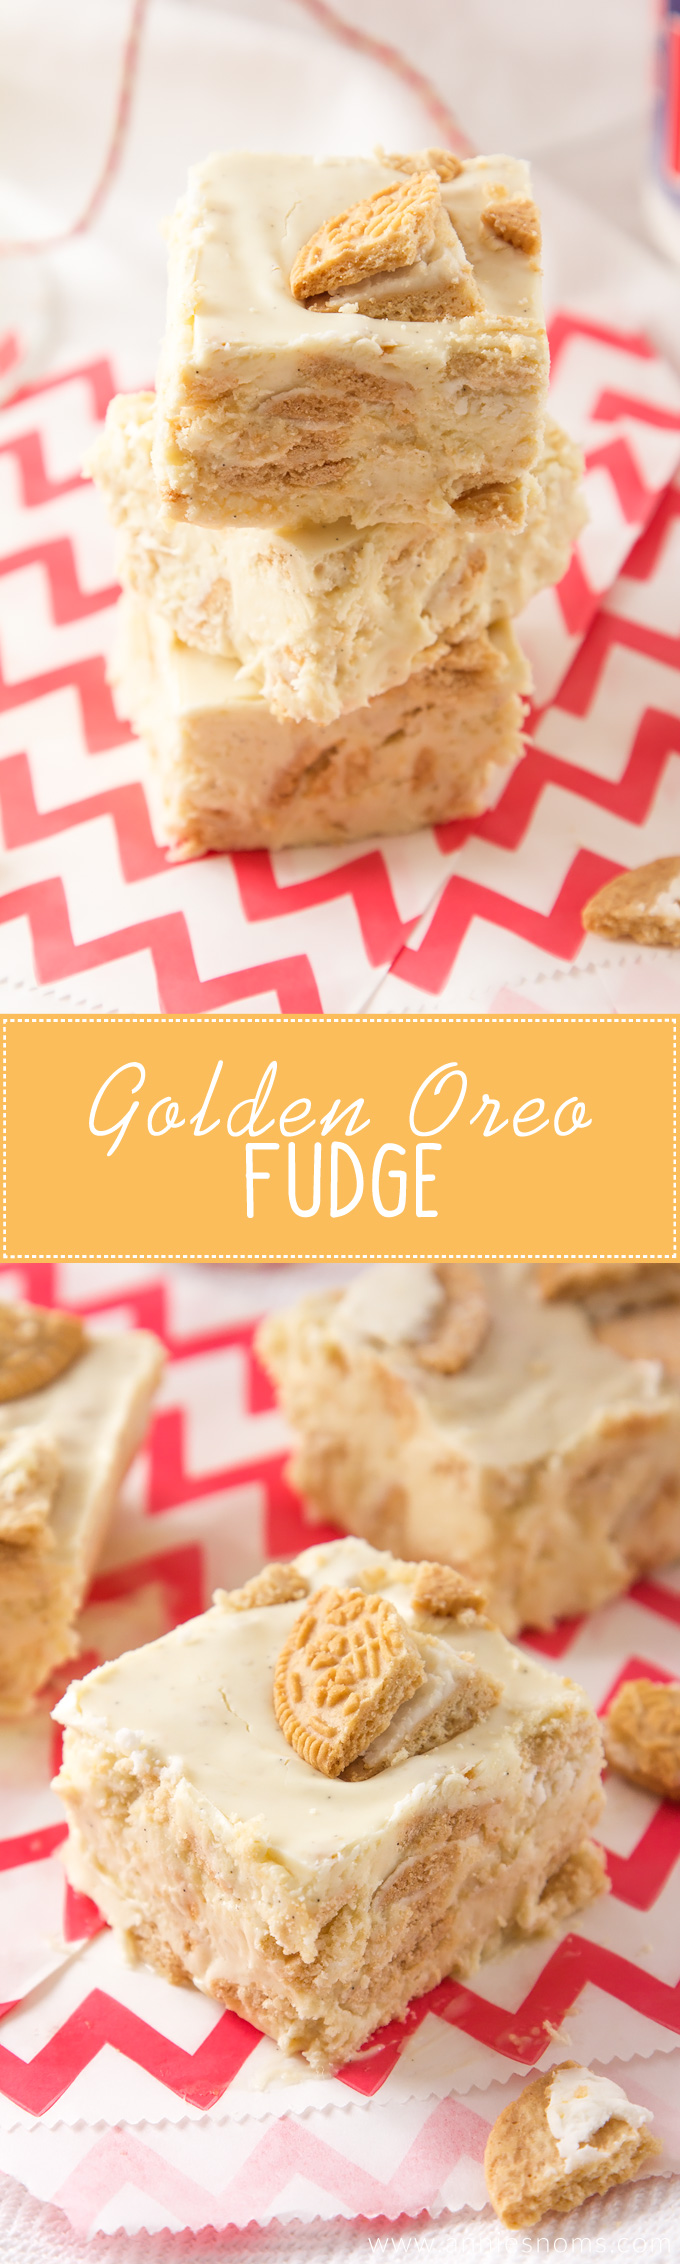 This melt in your mouth fudge is jam packed with Golden Oreo's, chocolate and marshmallow fluff. It's easy to make, hard to resist and totally divine!